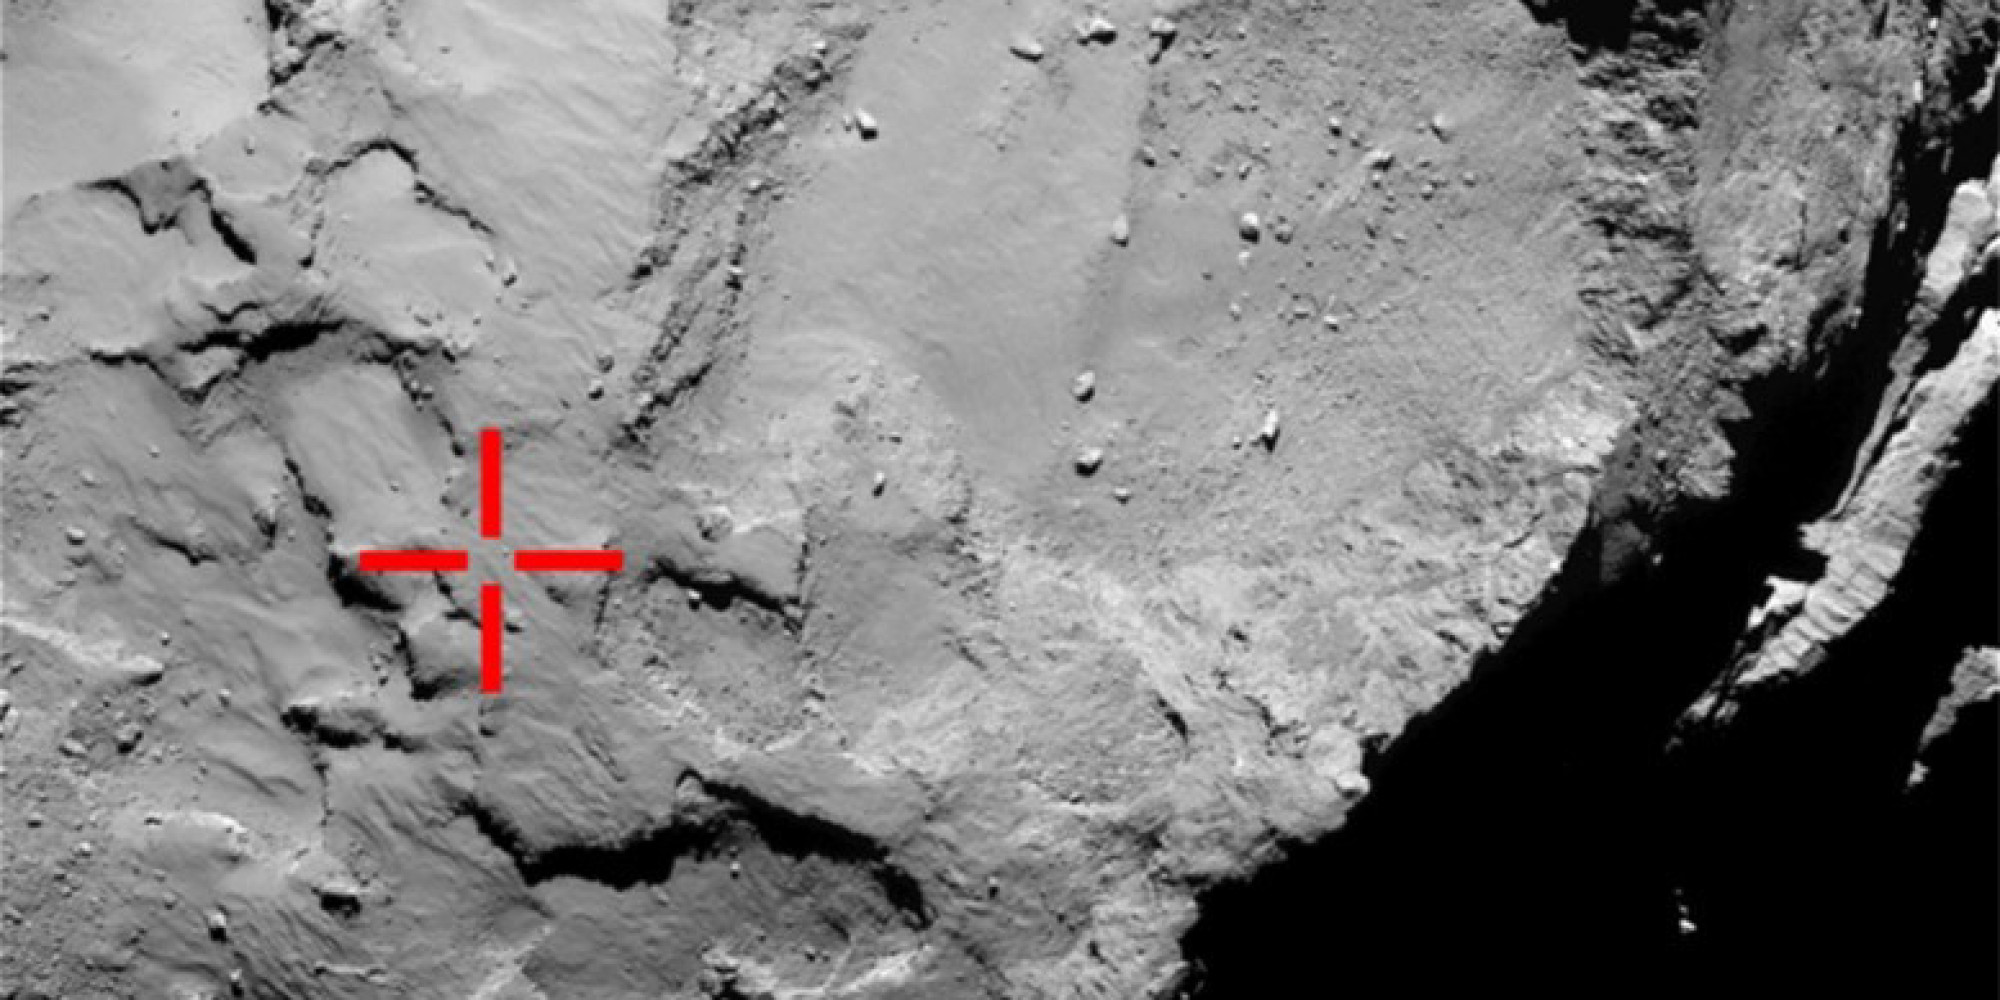 stable on philae comet lander - photo #8